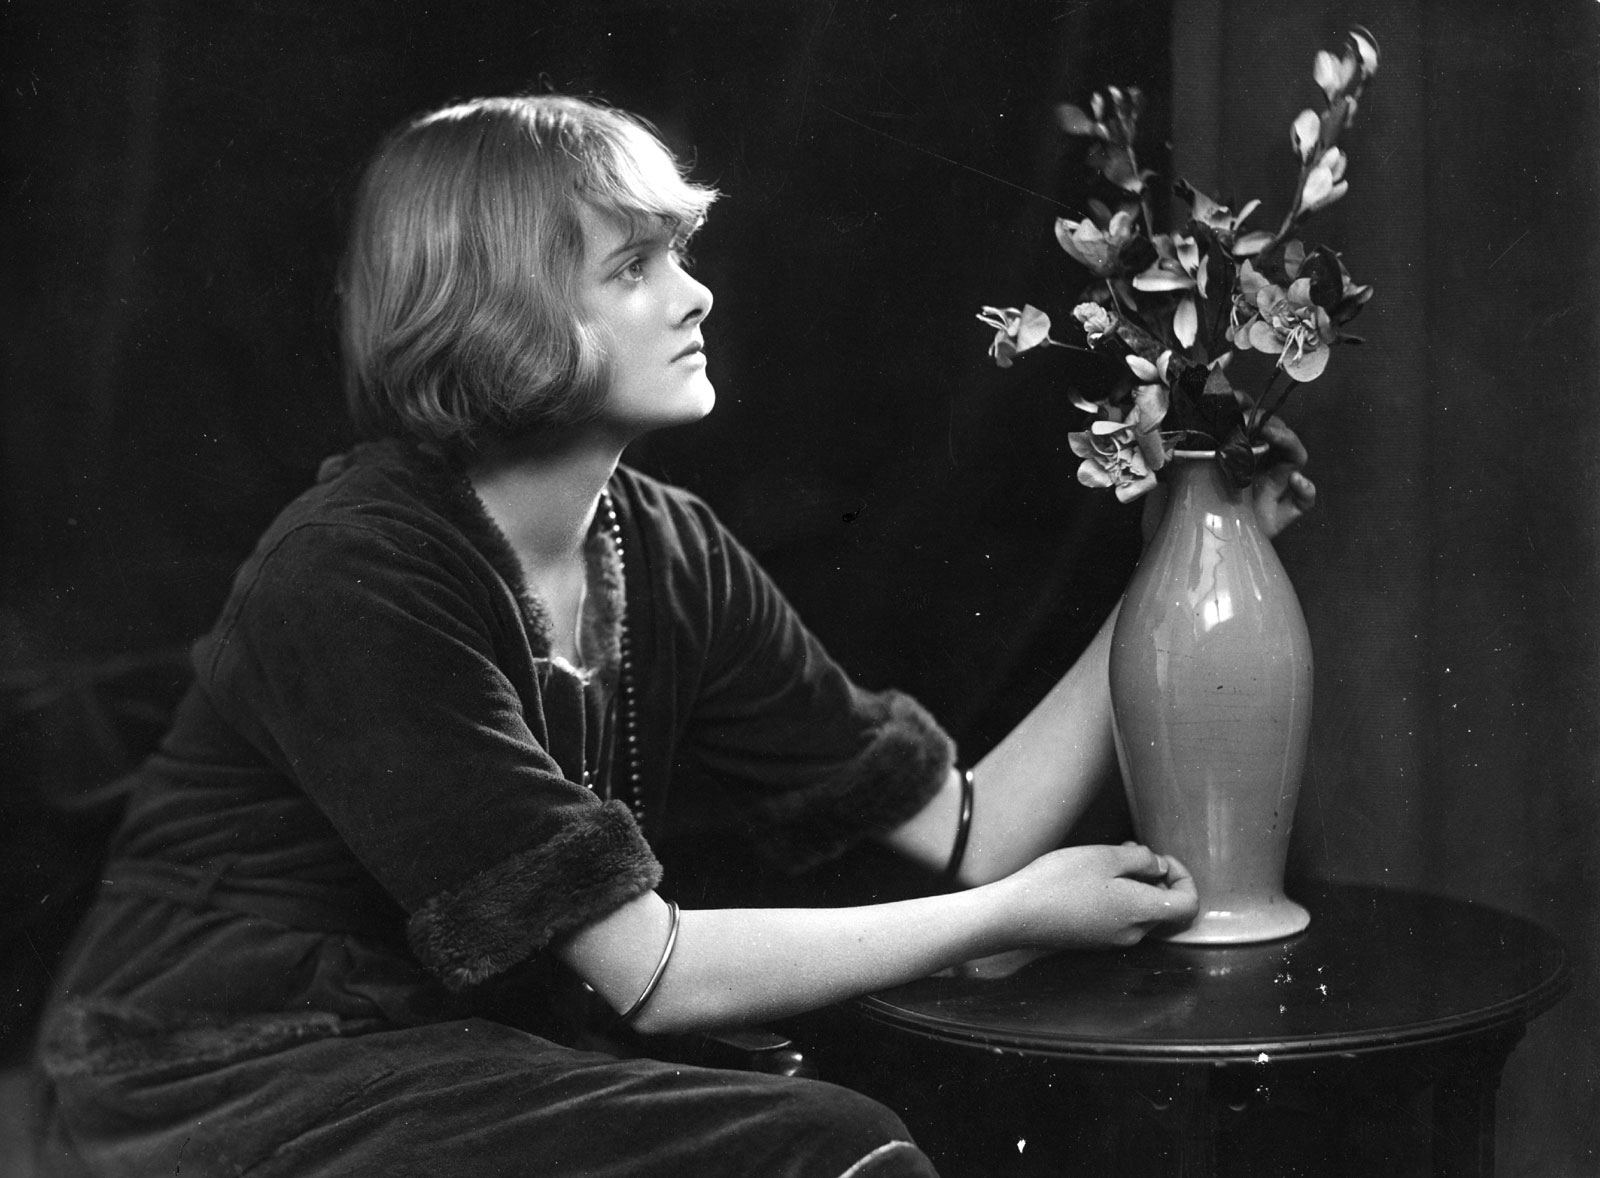 rebecca daphne du maurier essay The object of this essay is to discuss the following three books from the feminist perspective: rebecca by daphne du maurier, lucy by jamaica kincard and carrie by stephen king the novel rebecca by daphne du maurier belongs to two genres - romance and crime.